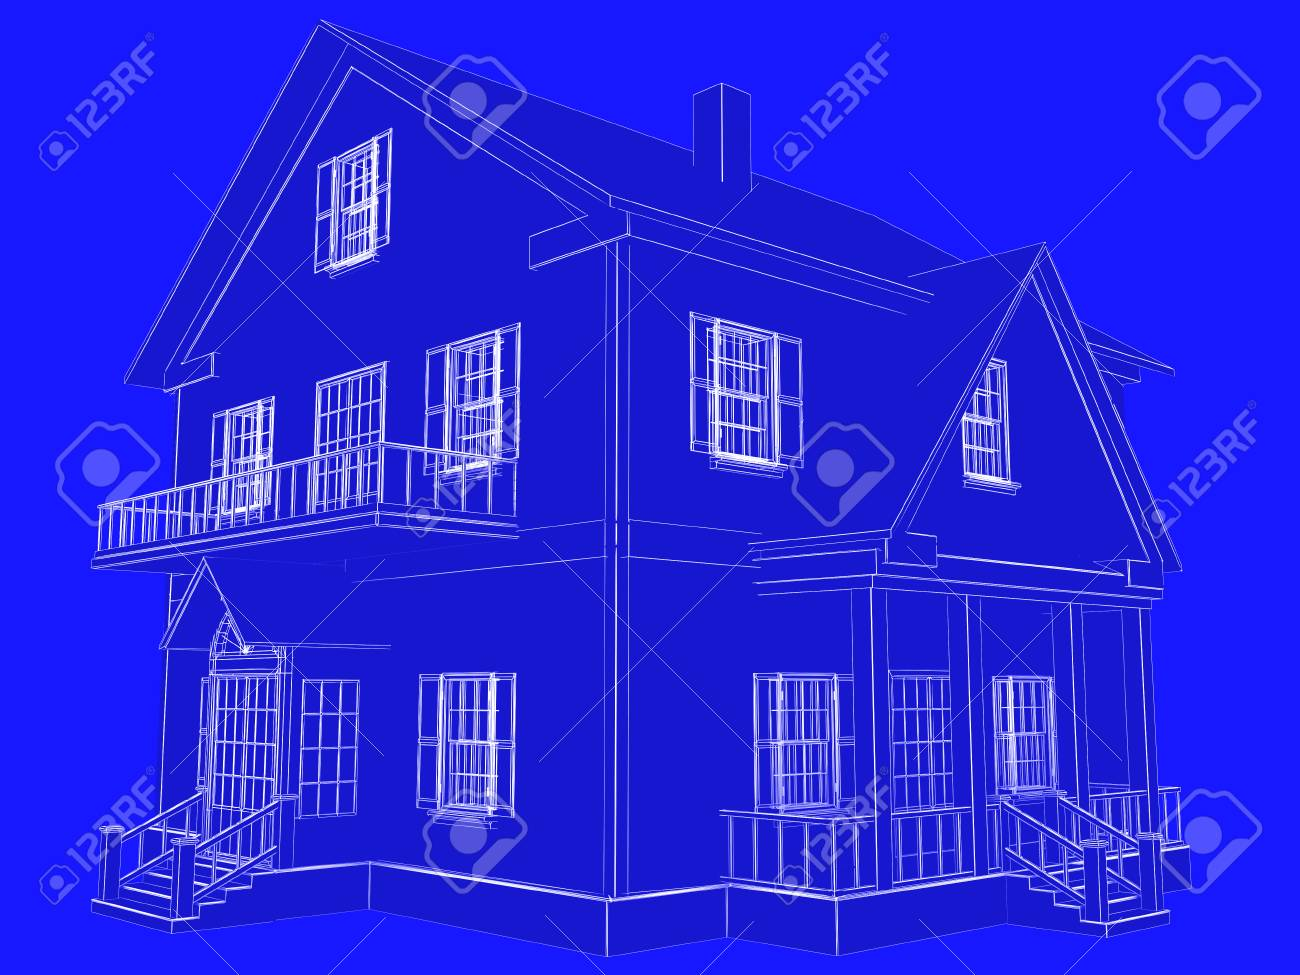 Blueprint style 3d rendered house white outlines on blue background blueprint style 3d rendered house white outlines on blue background stock photo 93819178 malvernweather Images